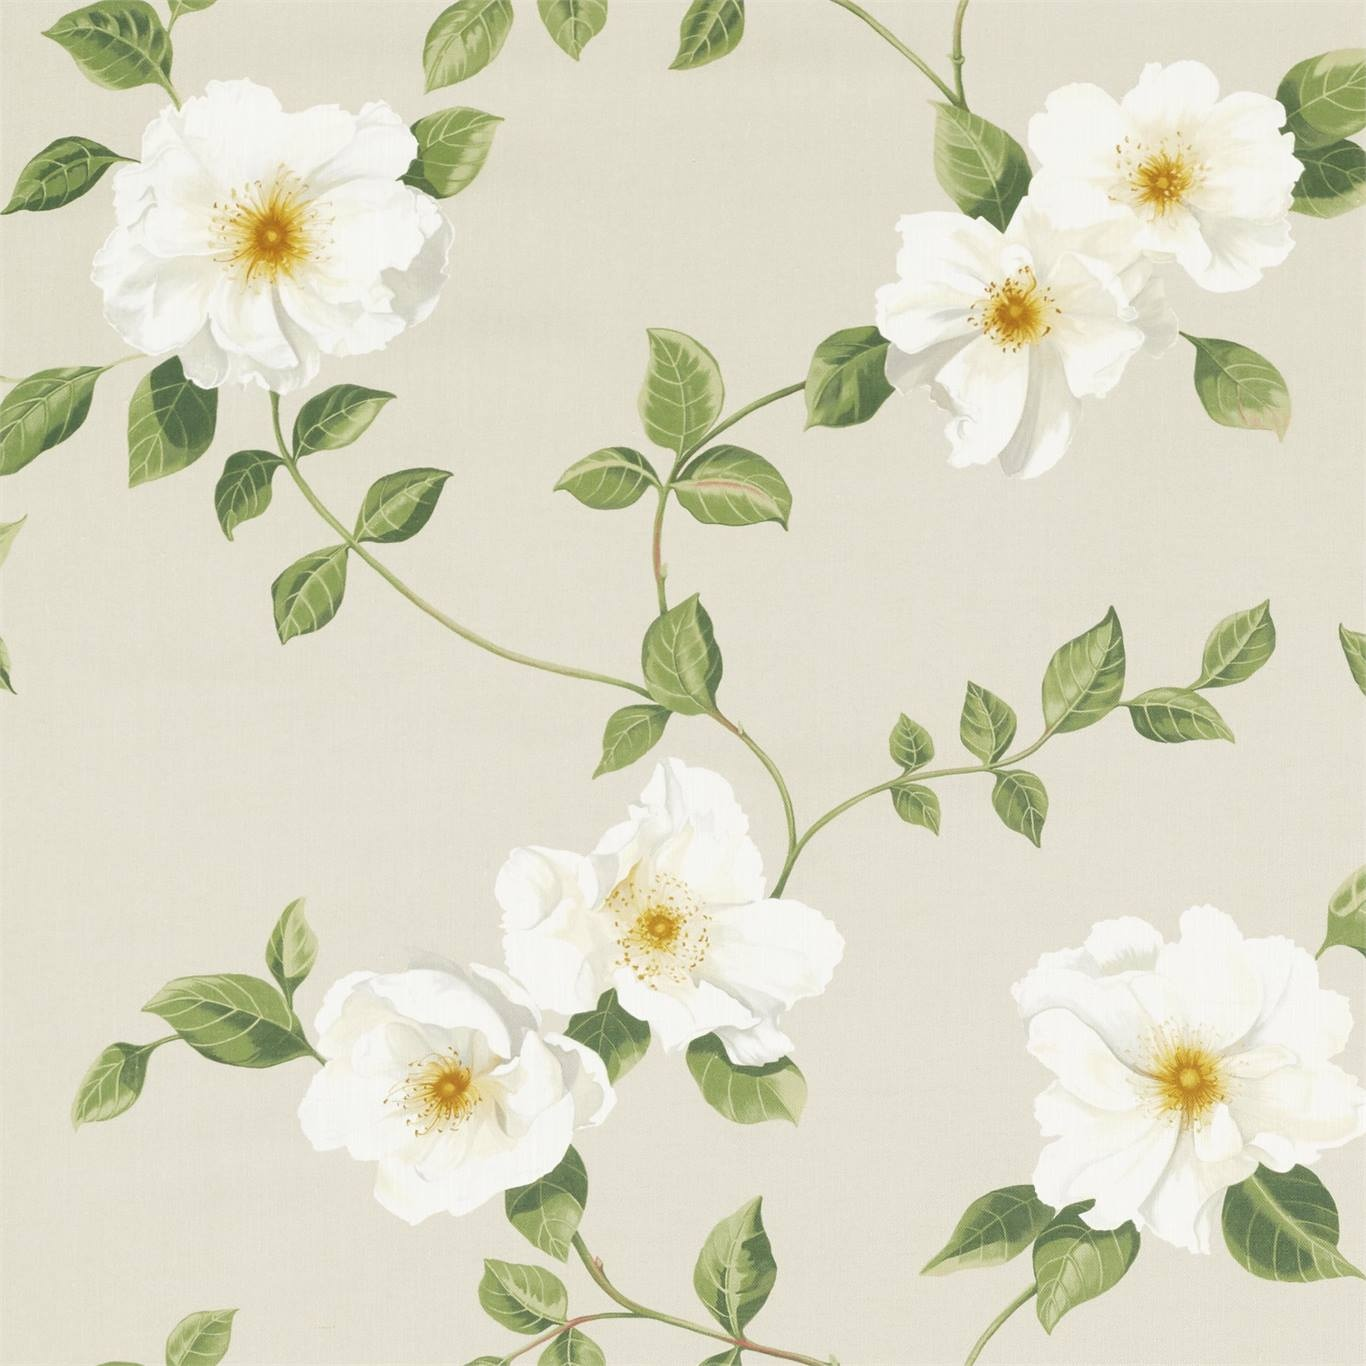 Image of Sanderson Poet's Rose Linen Fabric 226738